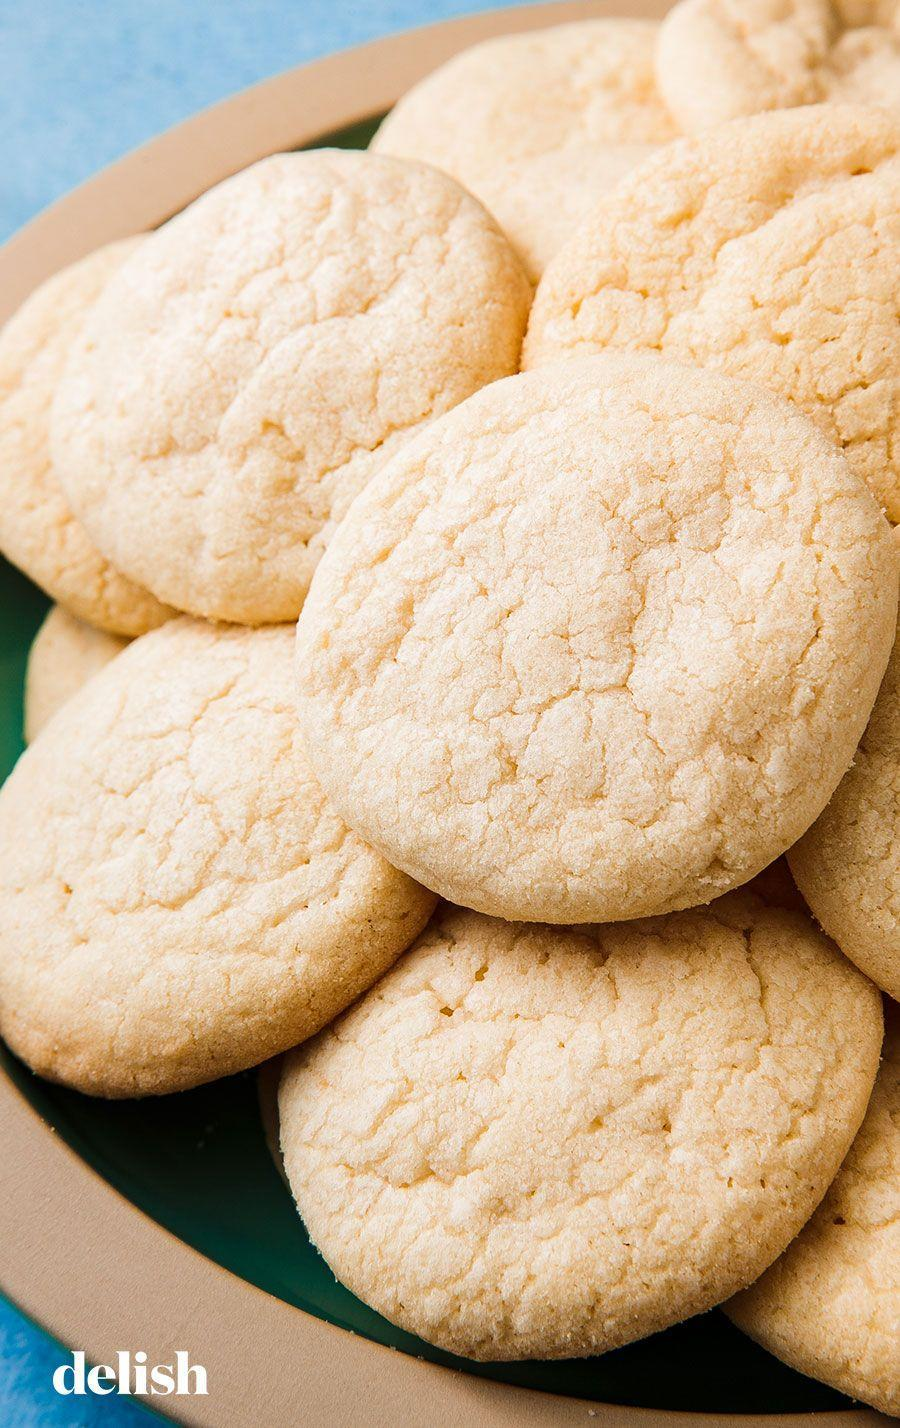 "<p>You can't go wrong with these simple sugar cookies. </p><p>Get the recipe from <a href=""https://www.delish.com/cooking/recipe-ideas/a25482462/wafer-cookies-recipe/"" rel=""nofollow noopener"" target=""_blank"" data-ylk=""slk:Delish"" class=""link rapid-noclick-resp"">Delish</a>.</p>"